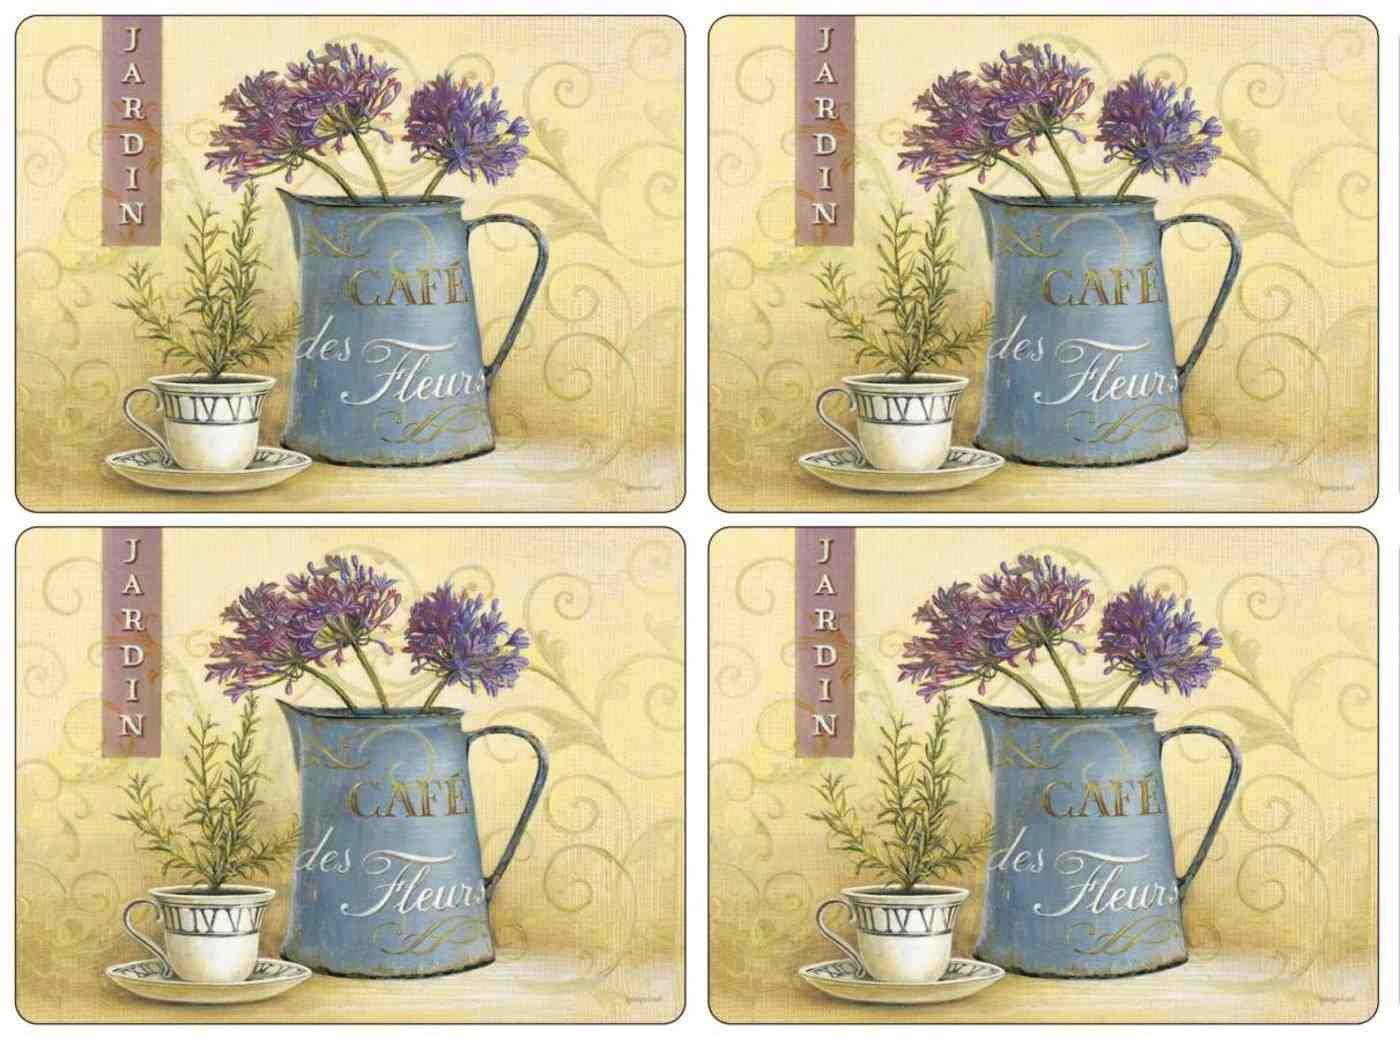 Pimpernel Placemats - Set of 4 - Cafe de Fleurs